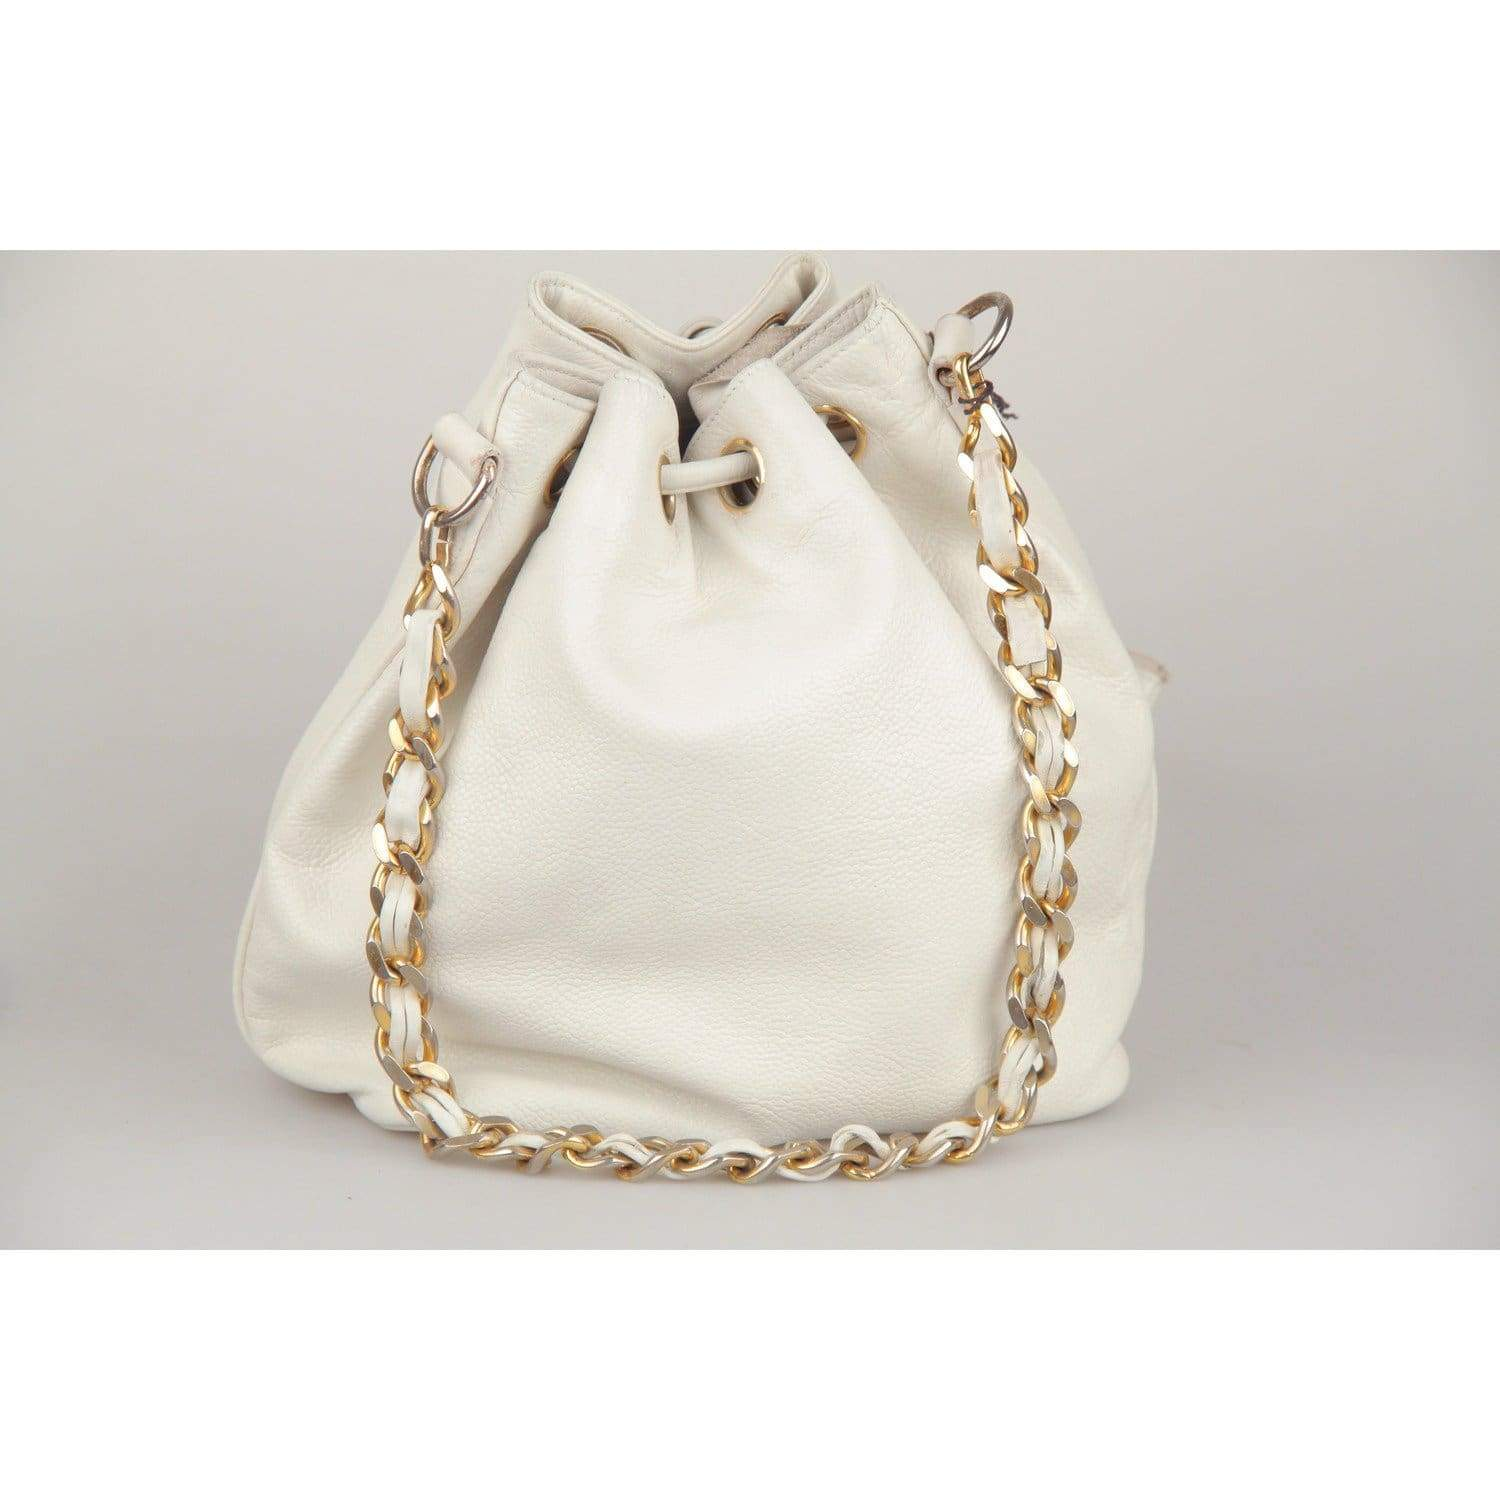 21013e34ca74 Chanel Vintage White Leather Drawstring Bag With Cc Logo Opherty & Ciocci